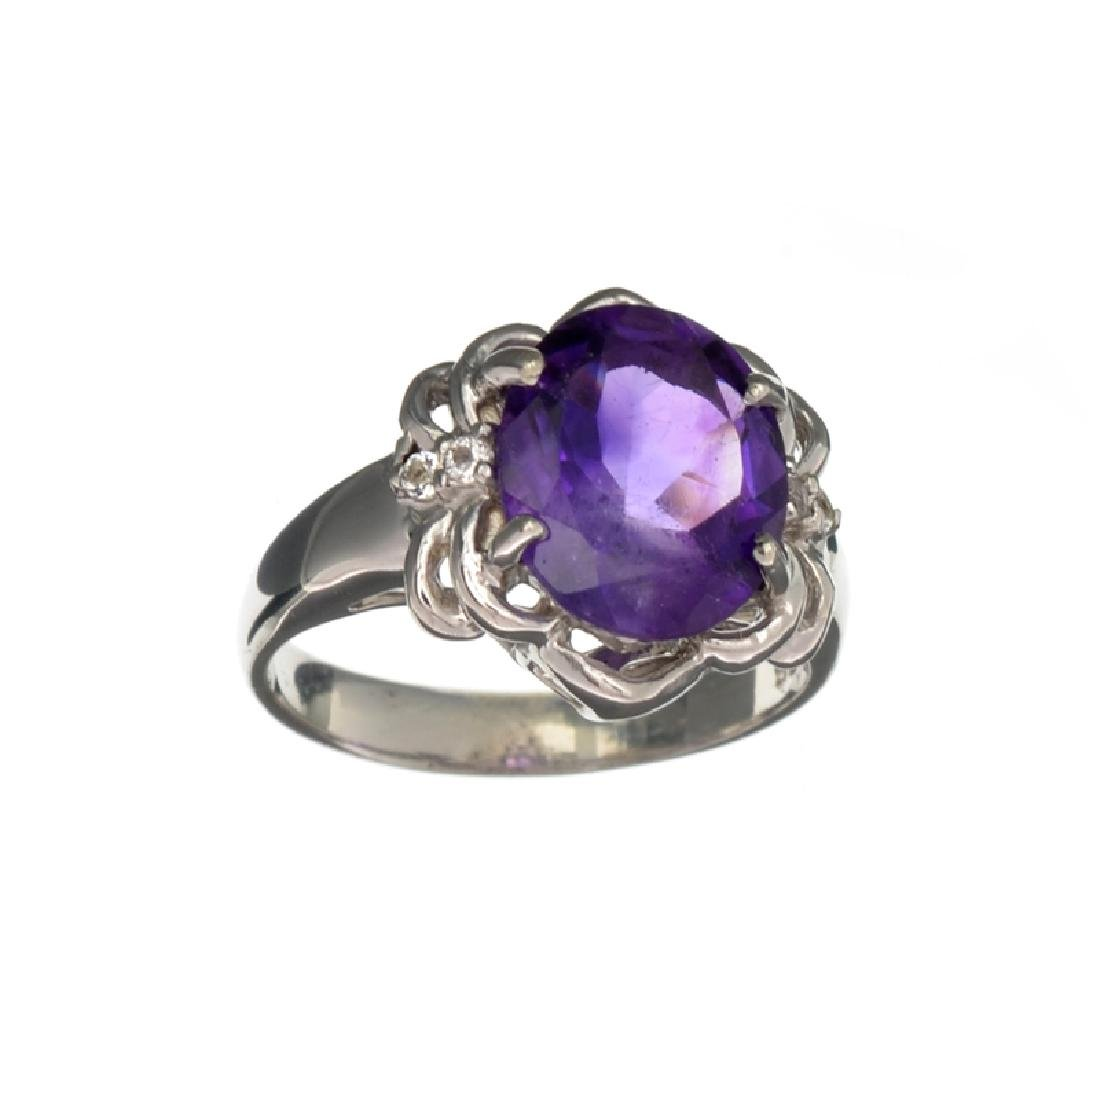 APP: 0.5k Fine Jewelry 3.04CT Oval Cut Amethyst And